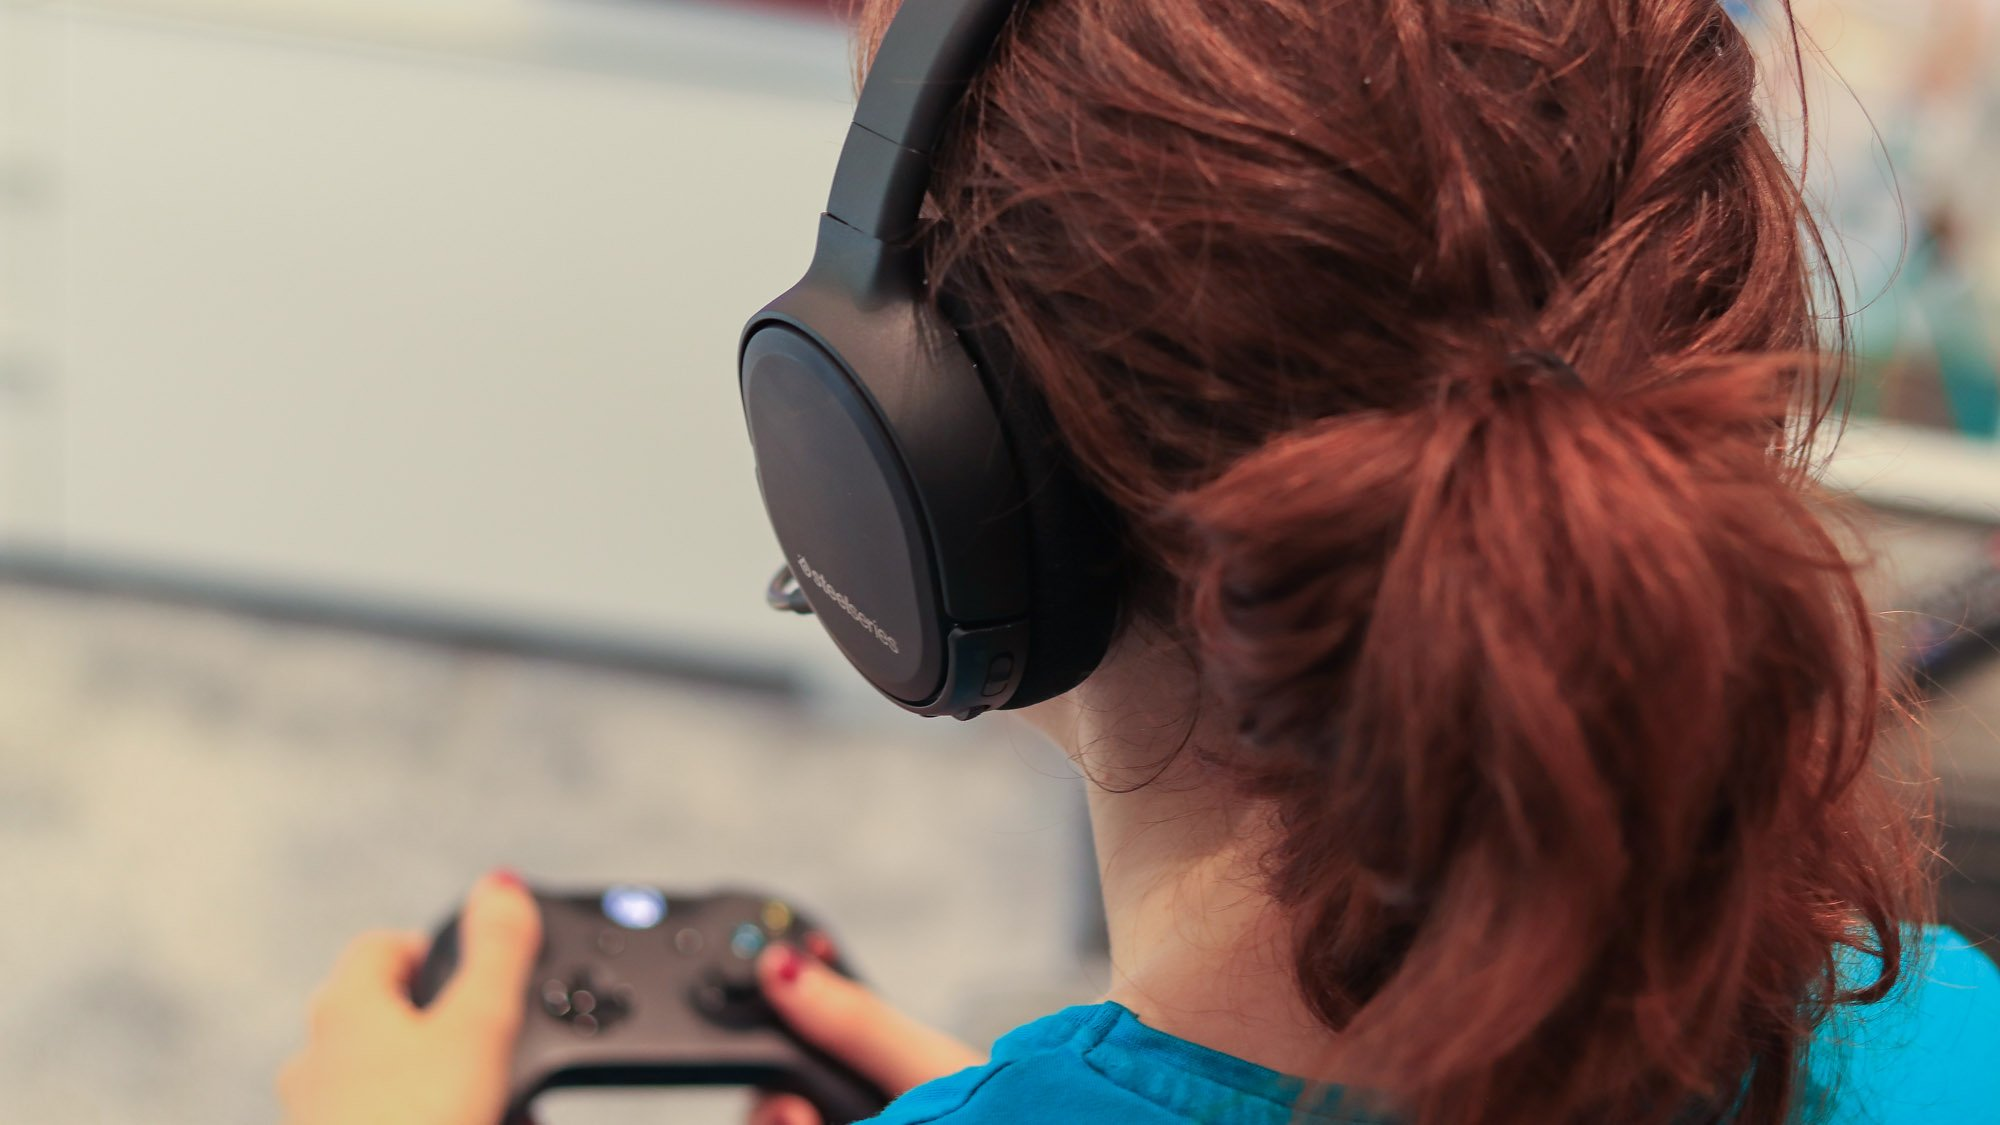 Best Wireless Gaming Headset 2020 The Best Wireless Headsets For Ps4 Xbox One And Pc Expert Reviews